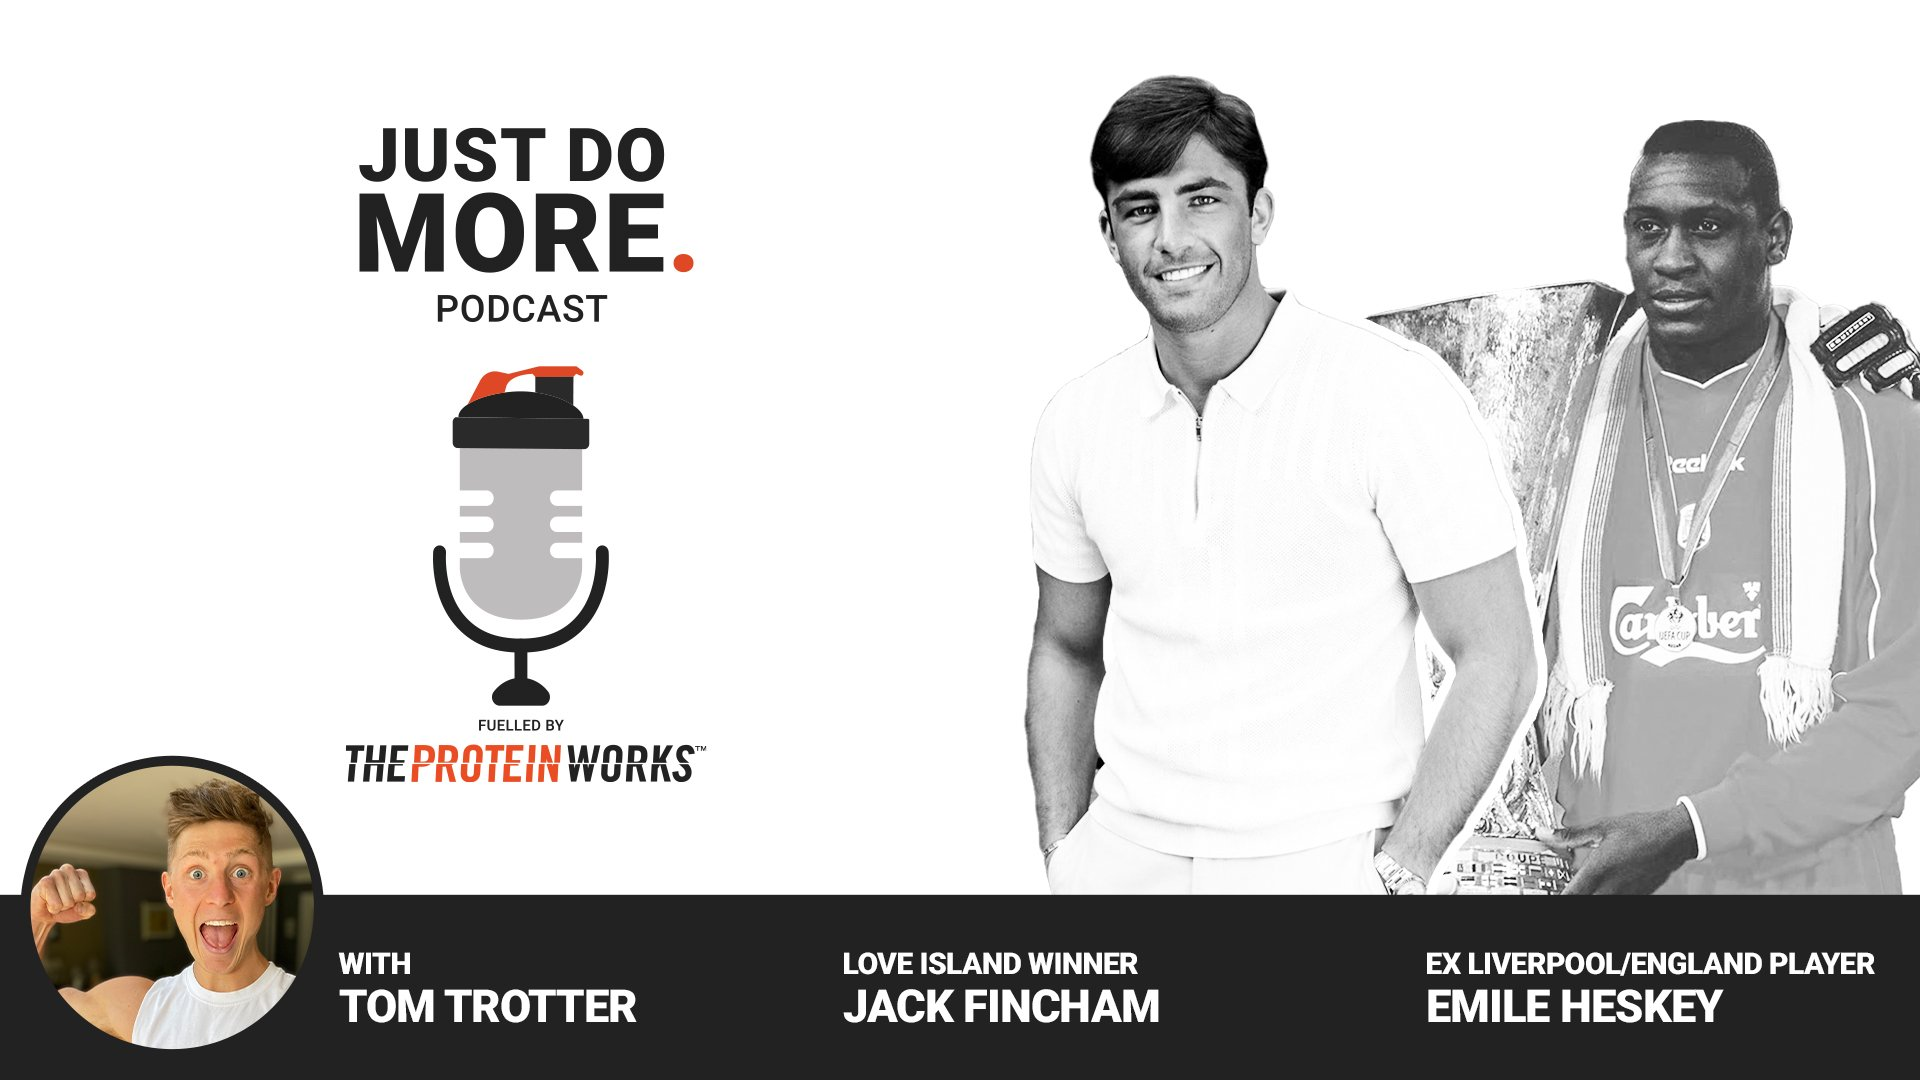 How Strong Is The Link Between Mental And Physical Health? | Just Do More Podcast